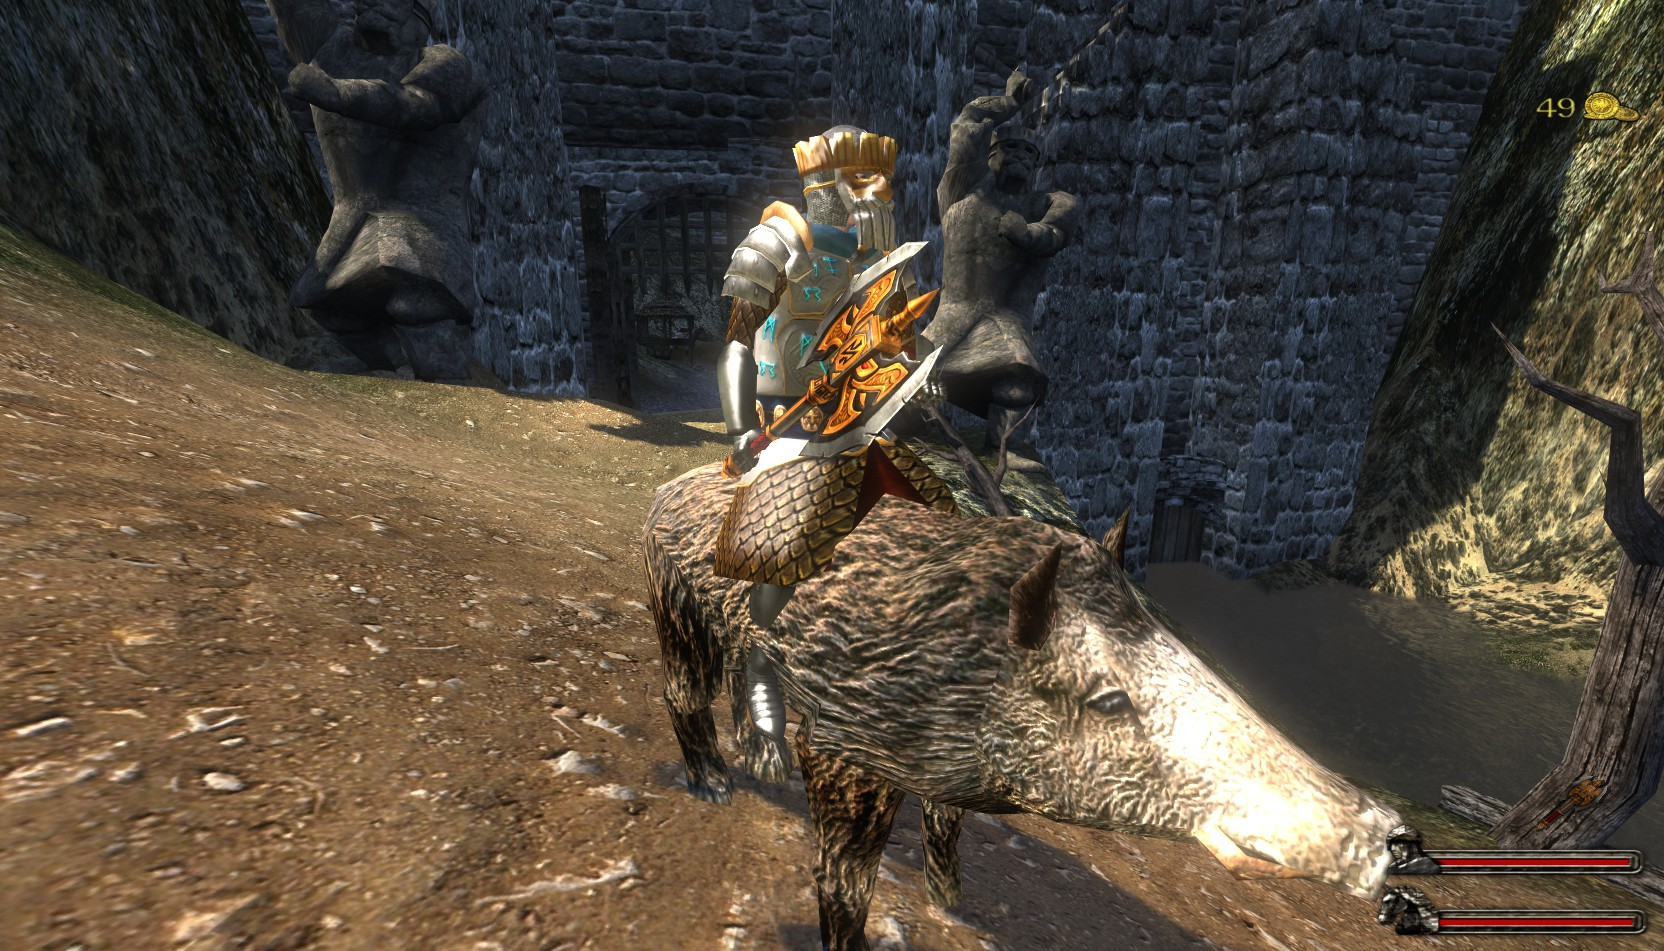 Arena near Erebor and Warhog image  Persistent Lord of the